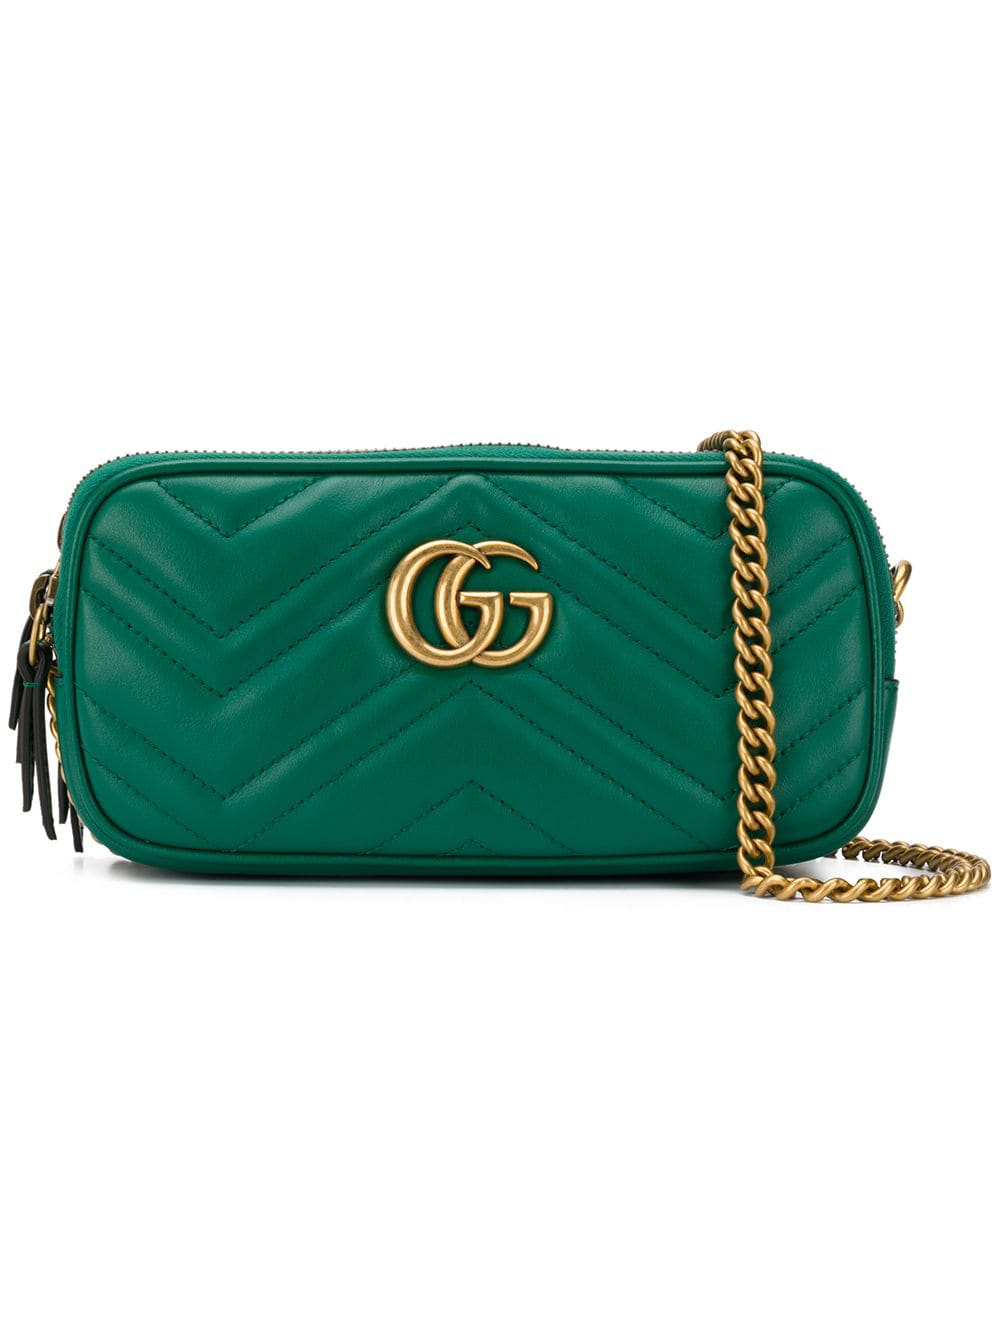 dc91acc288f9 Gucci Gg Marmont Crossbody Bag - Green | ModeSens